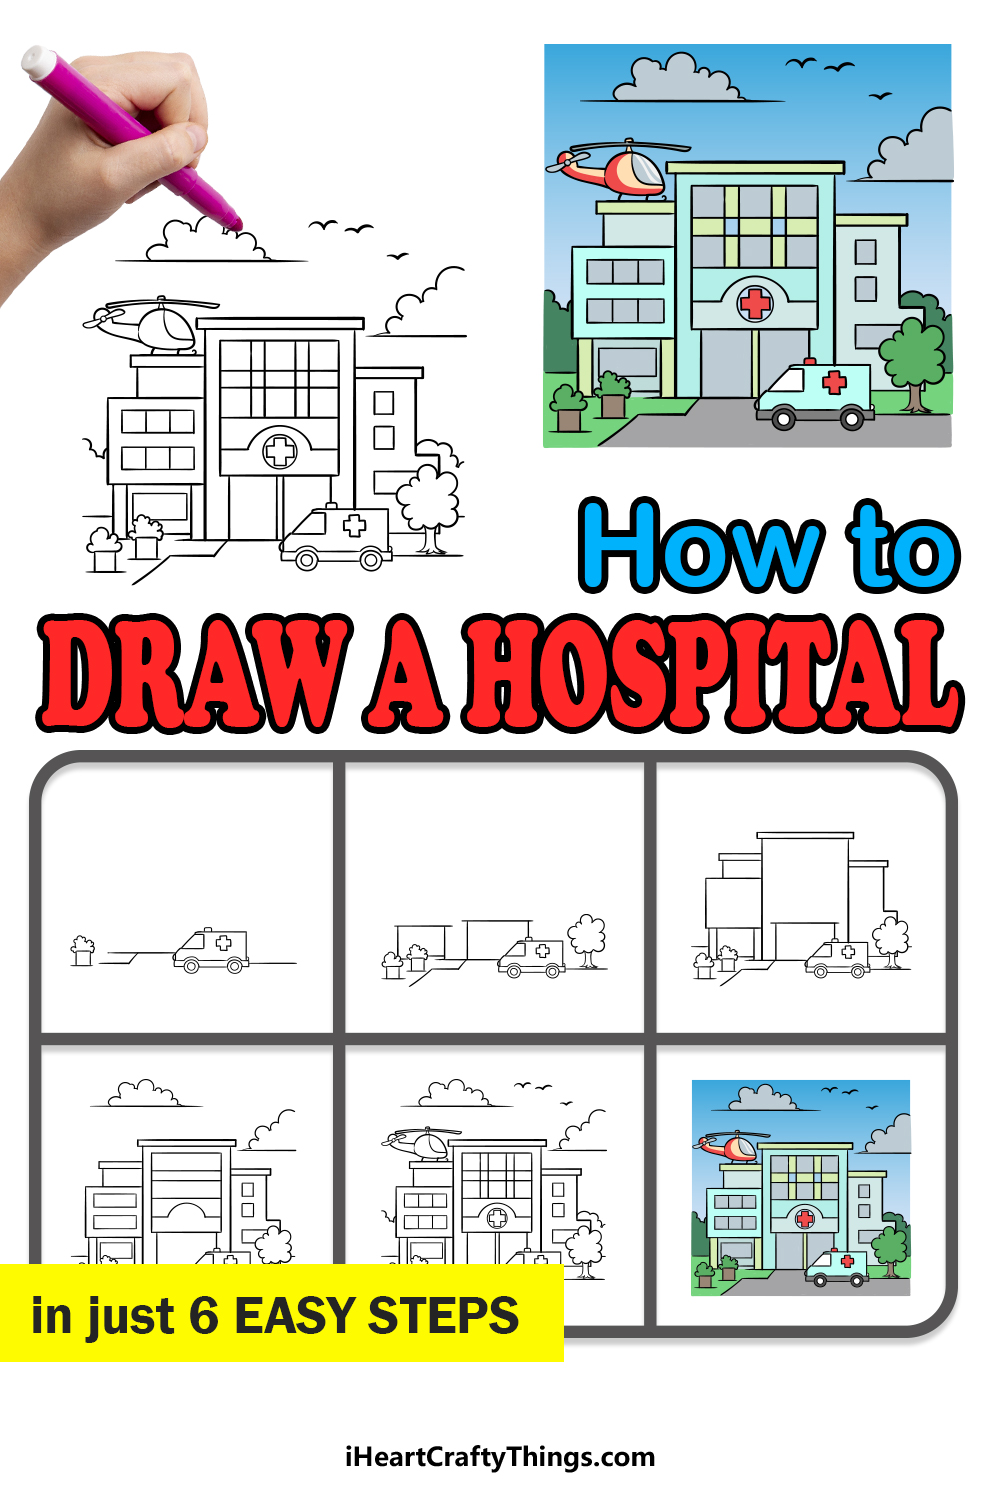 how to draw a hospital in 6 easy steps